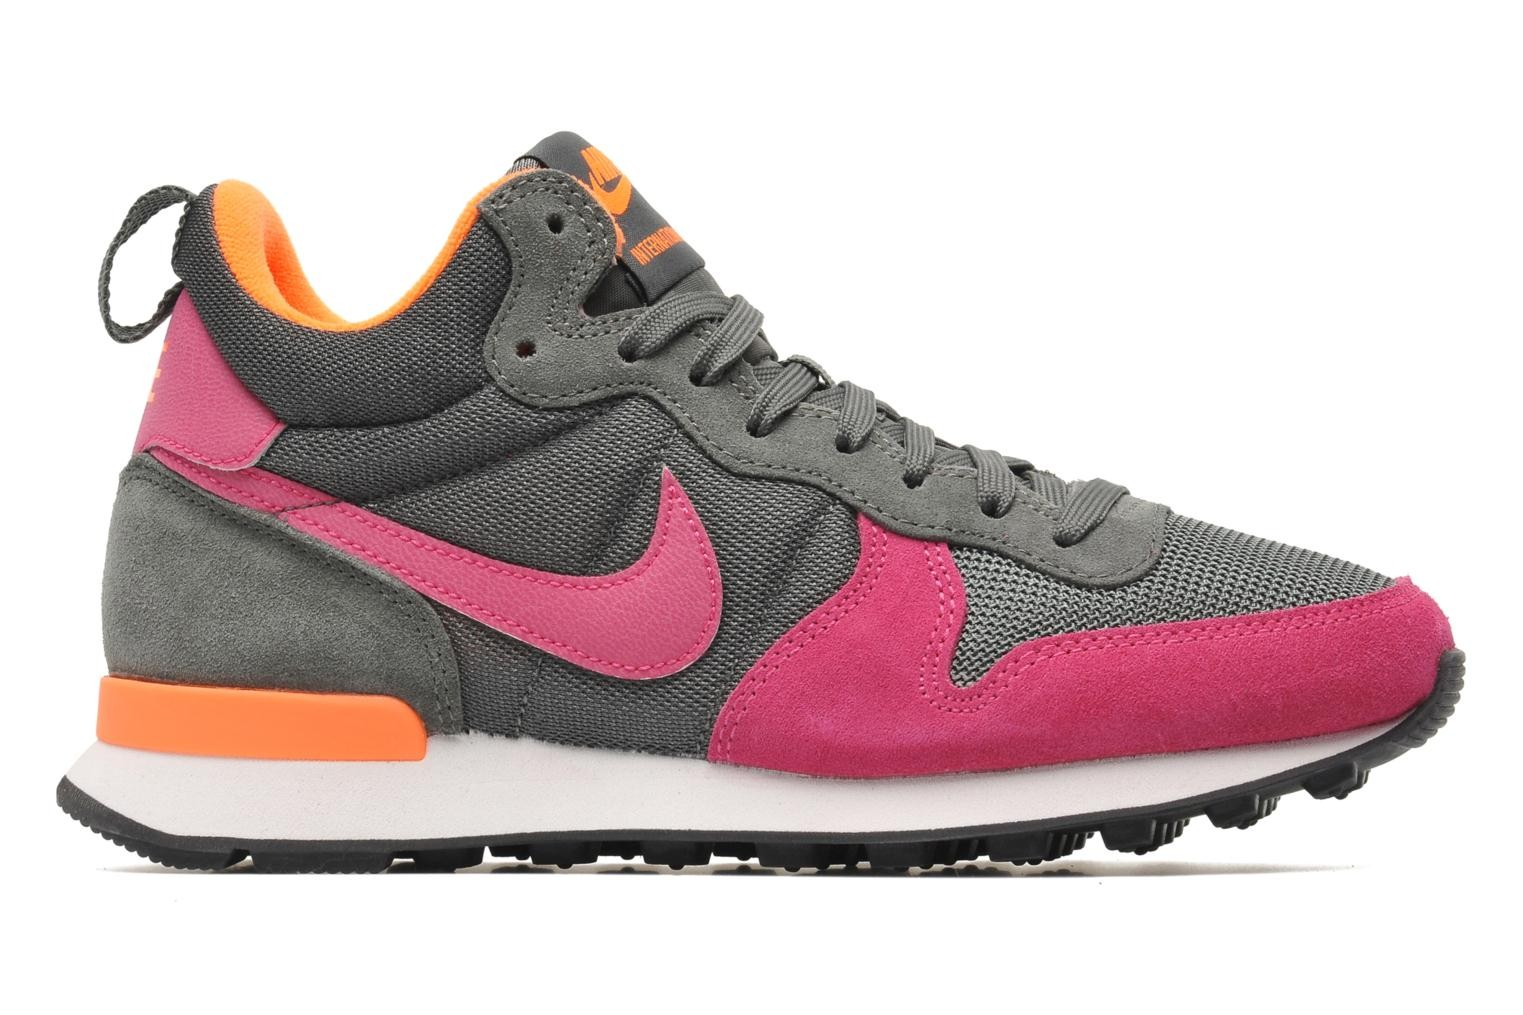 Nike Internationalist Mid Femme Chaussures River Rock/Orange Total/Sommet Blanche/Fireberry 683967-003